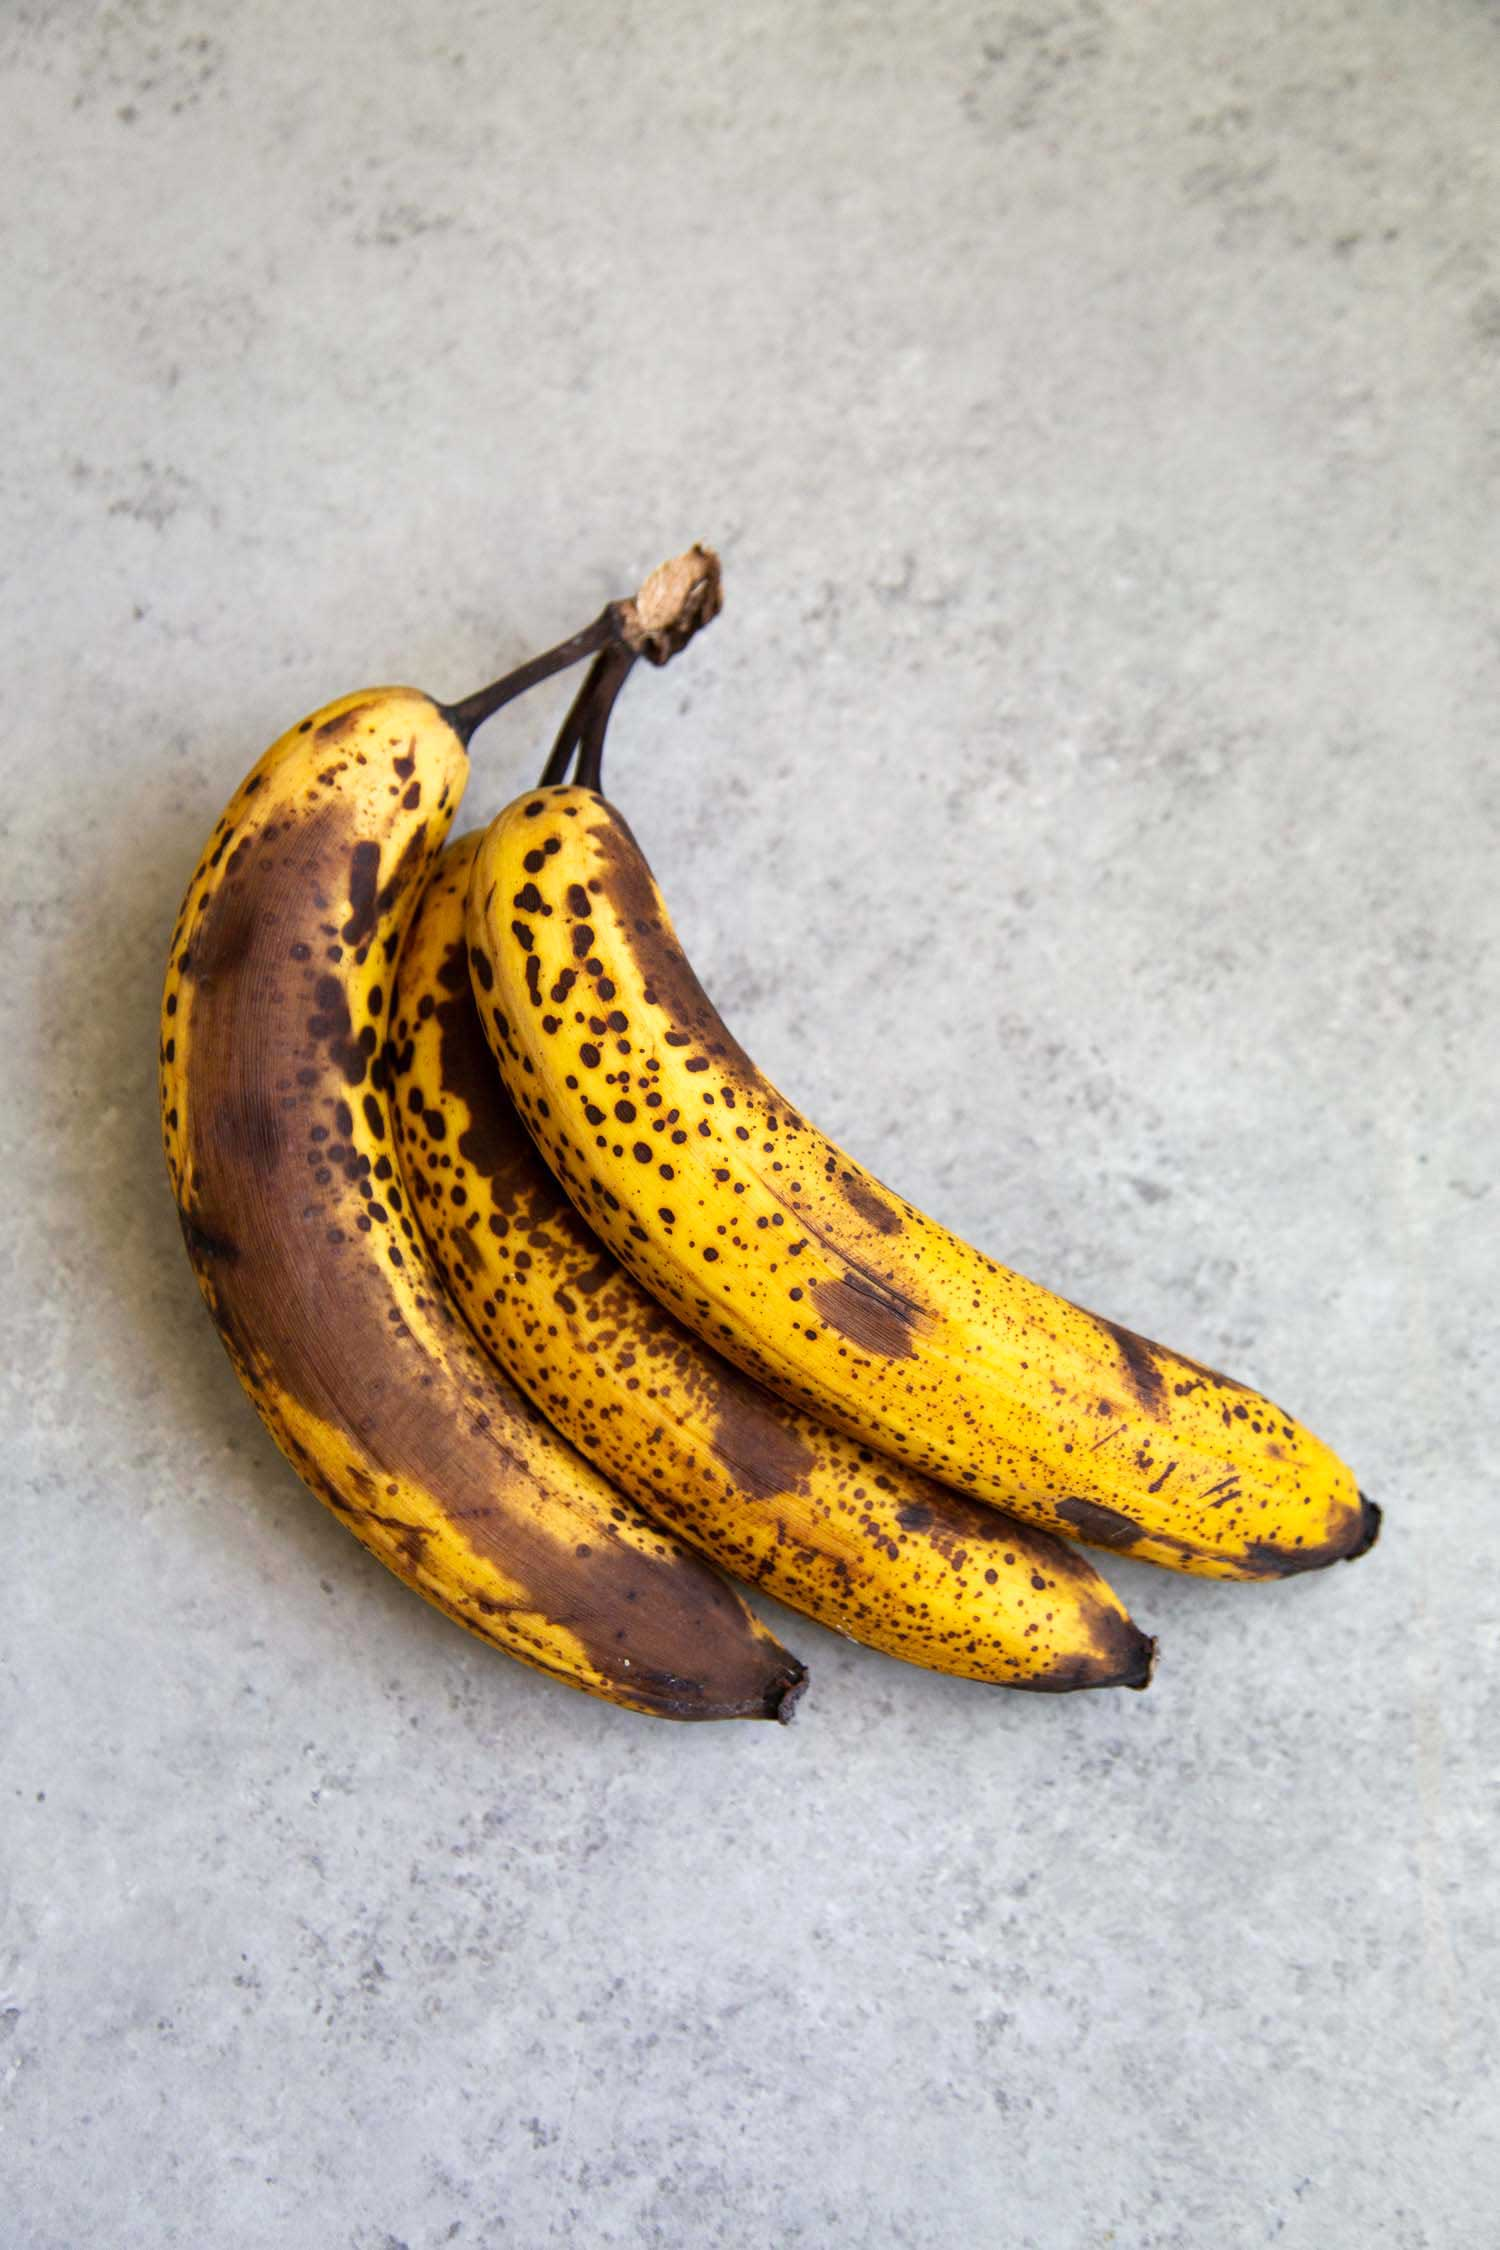 Ripe bananas used for baking should be spotty.